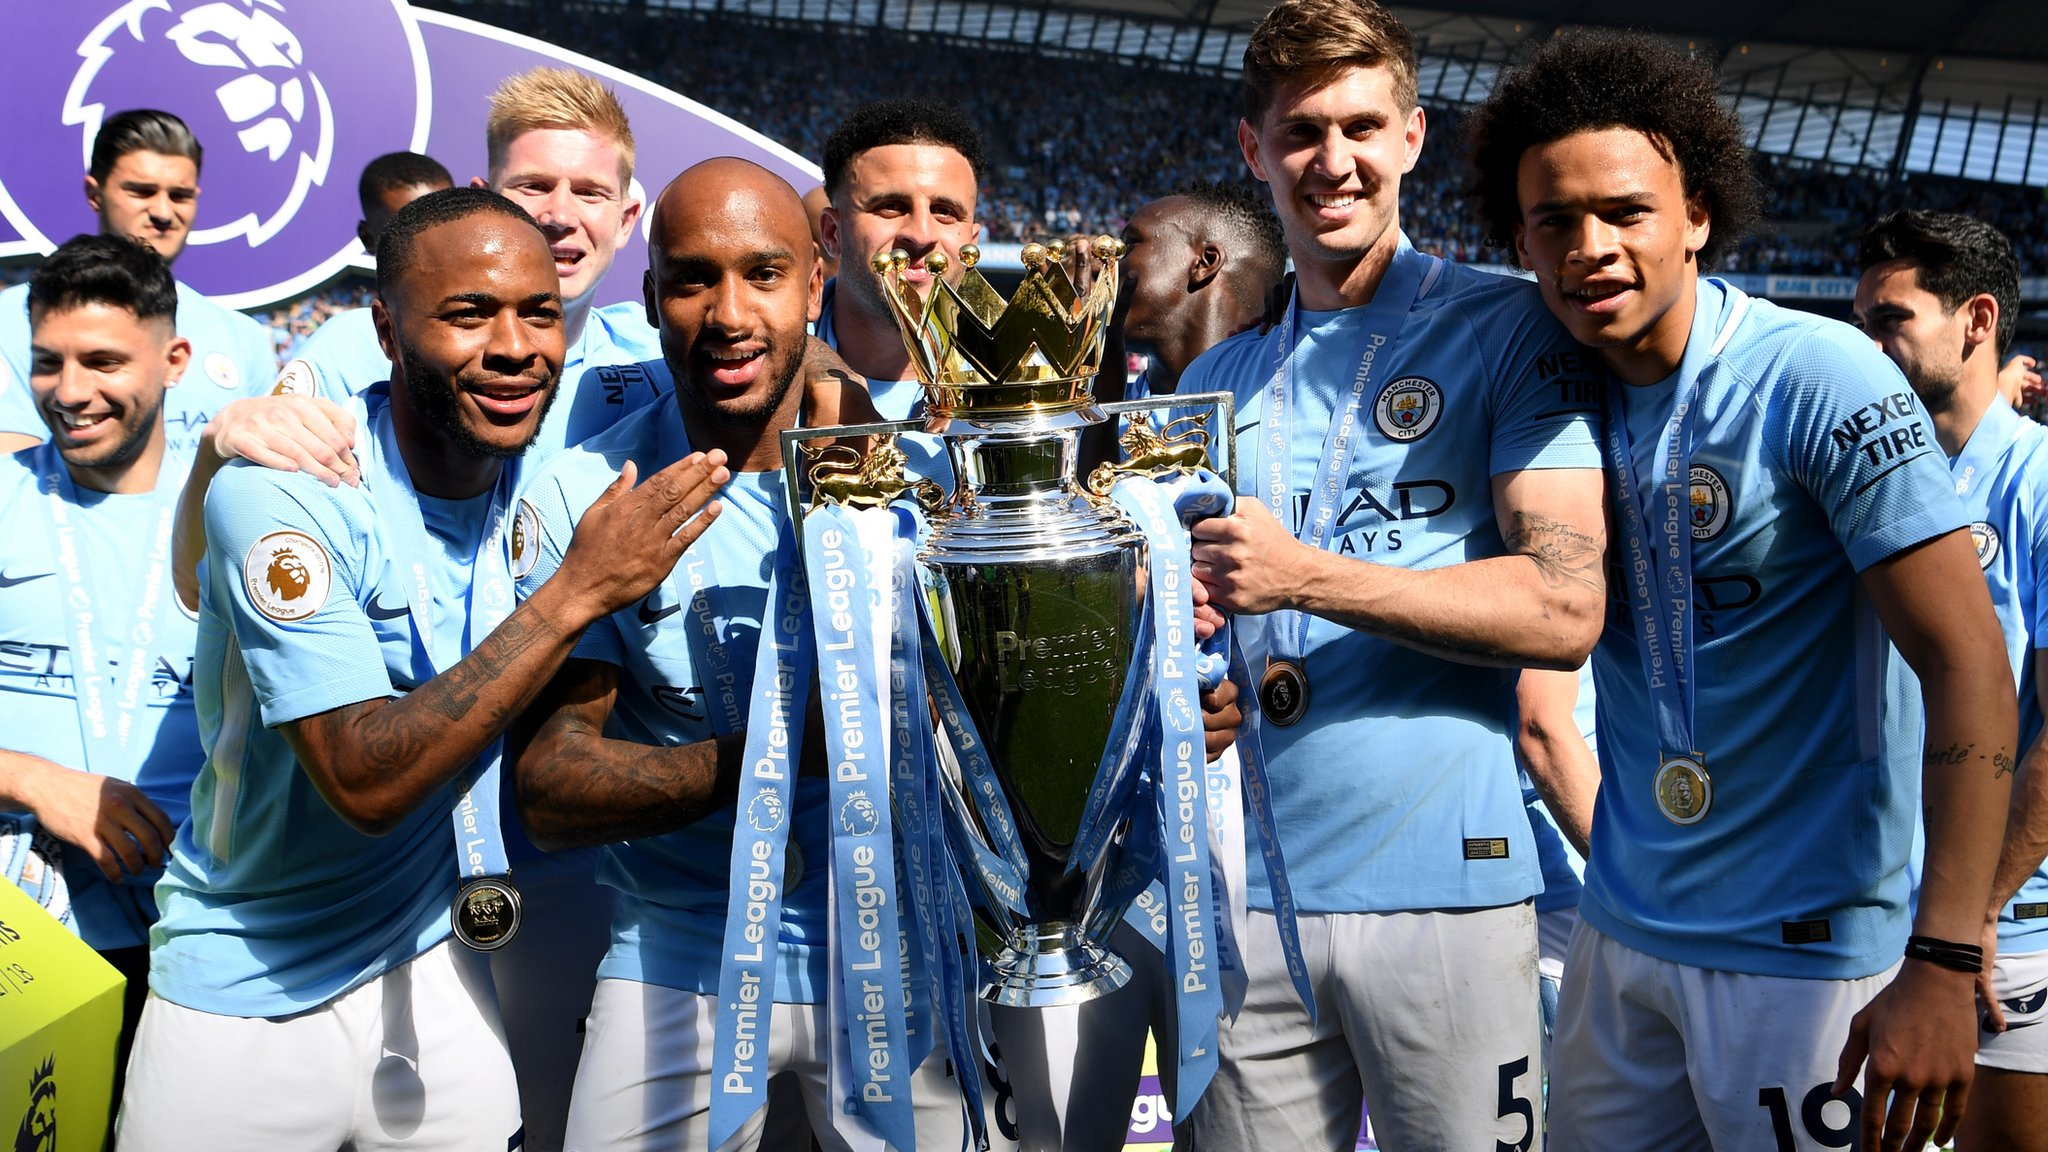 Premier League: Sale of two domestic packages imminent - Richard Scudamore